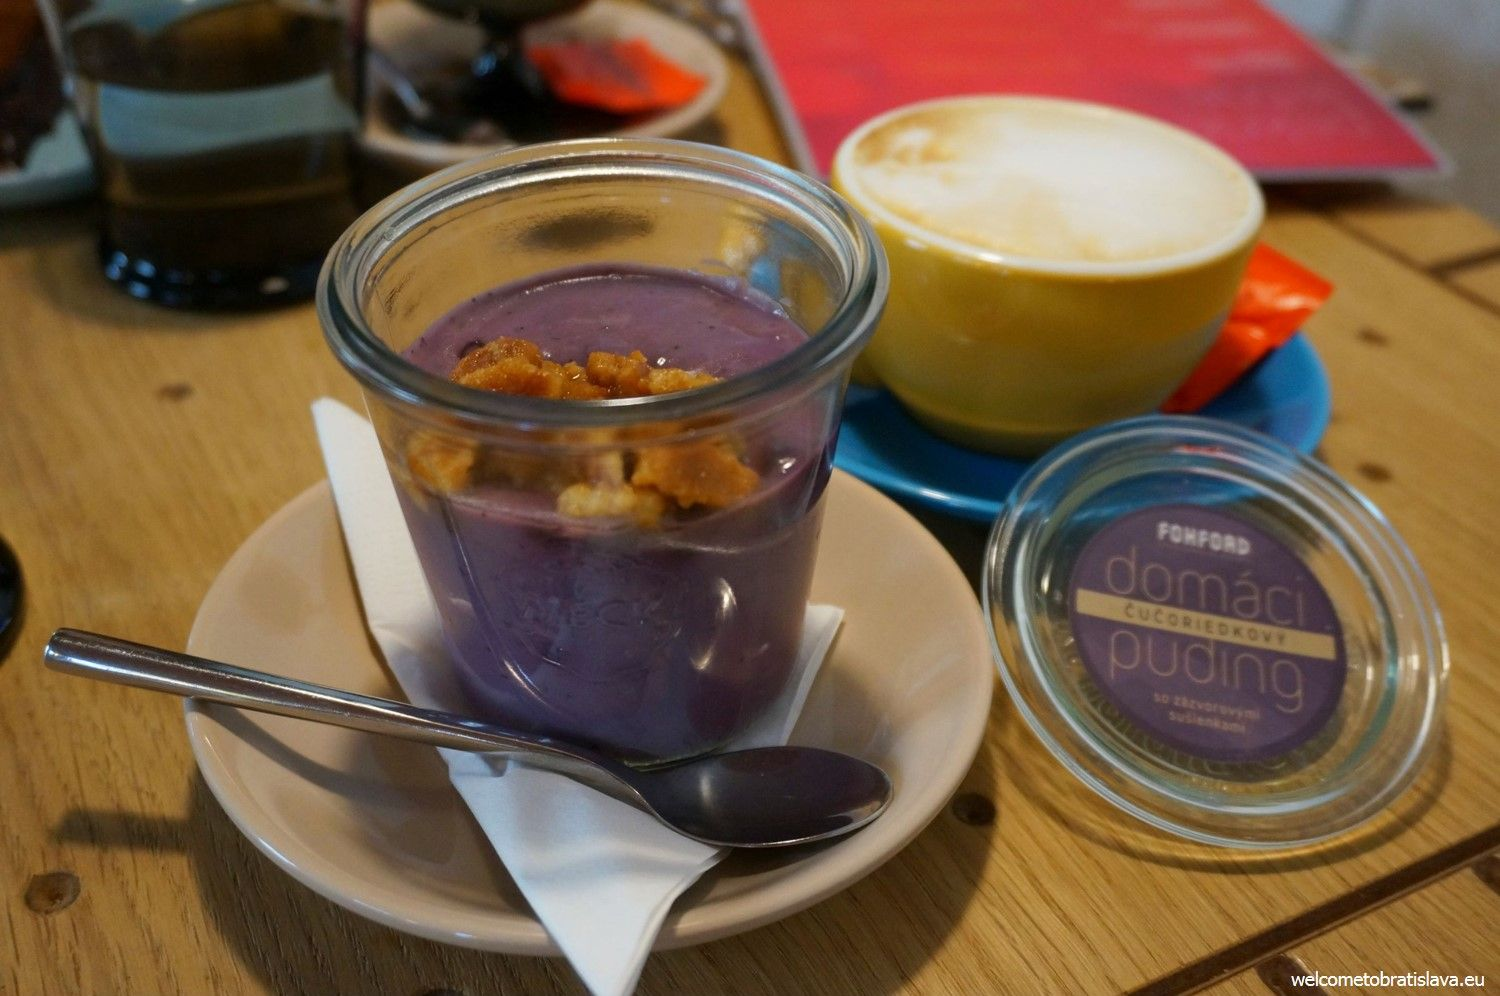 A blueberry pudding with ginger cookies